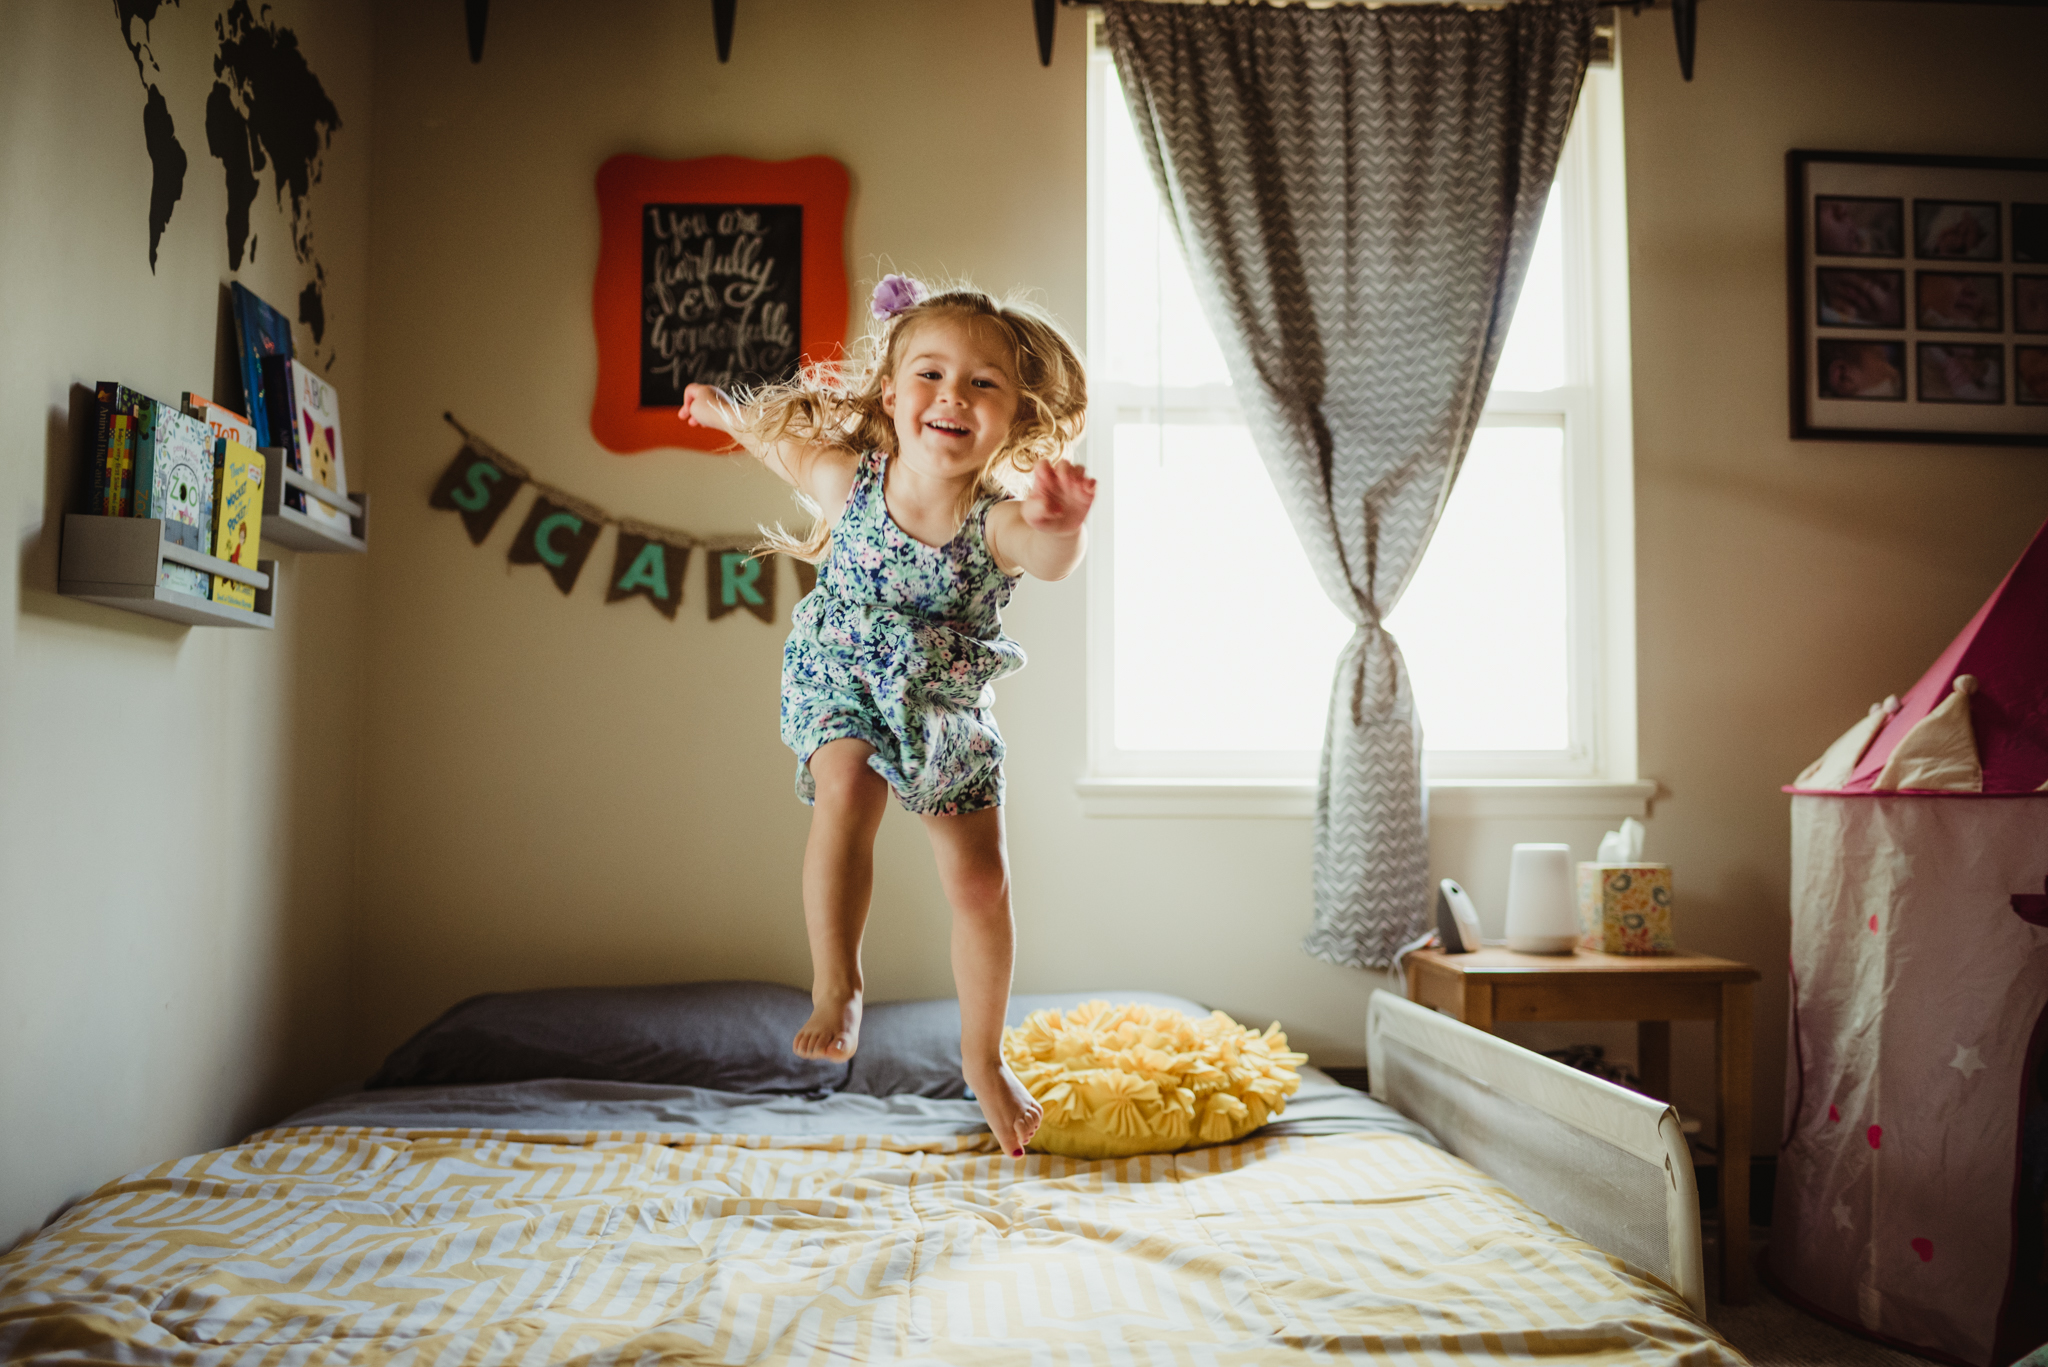 The little girl jumps up and down on her bed during their lifestyle session at home in Wake Forest with Rose Trail Images.